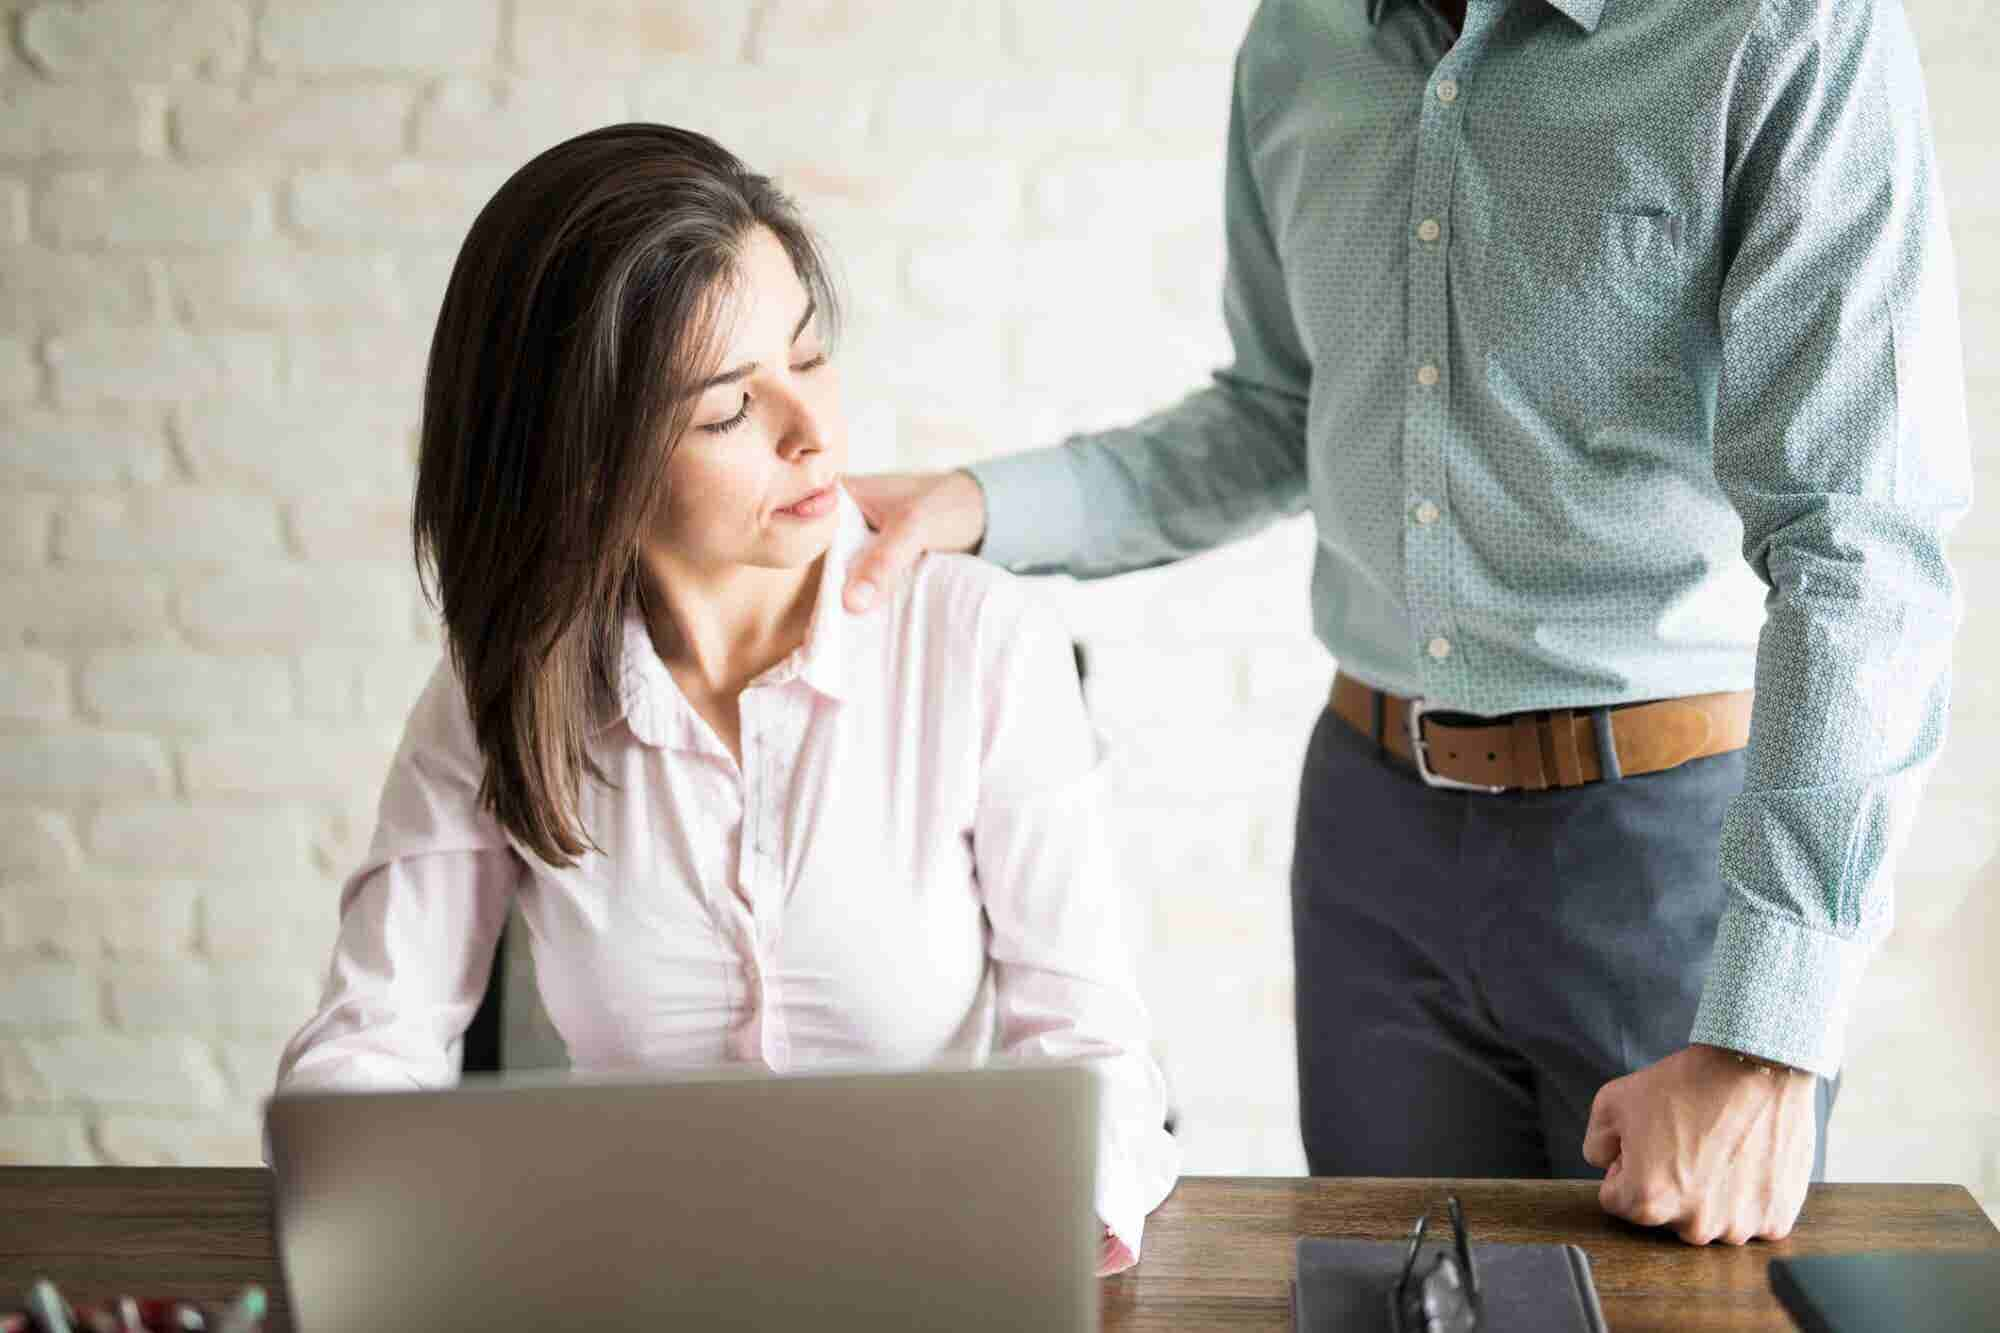 What Employees, Employers and Job Hunters Should Look for When It Comes to Workplace Harassment Policies